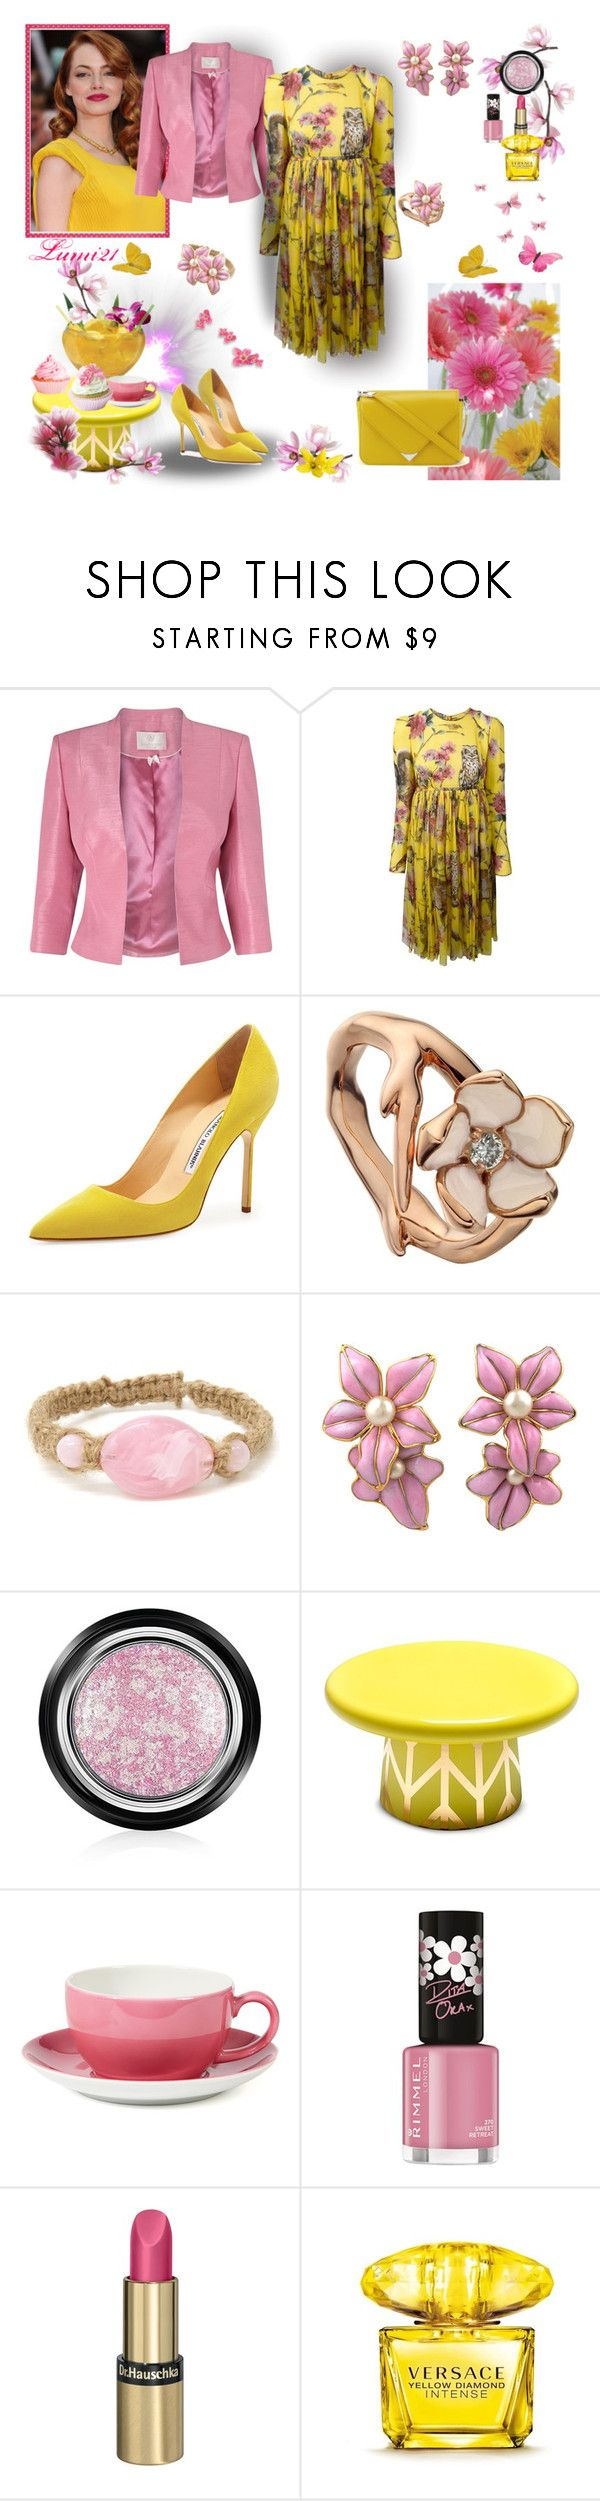 """""""SPRING'S SMILE"""" by lumi-21 ❤ liked on Polyvore featuring Jacques Vert, Dolce&Gabbana, Manolo Blahnik, Shaun Leane, Chanel, Armani Beauty, Alexander Wang, Bosa, Dibbern and Rimmel"""